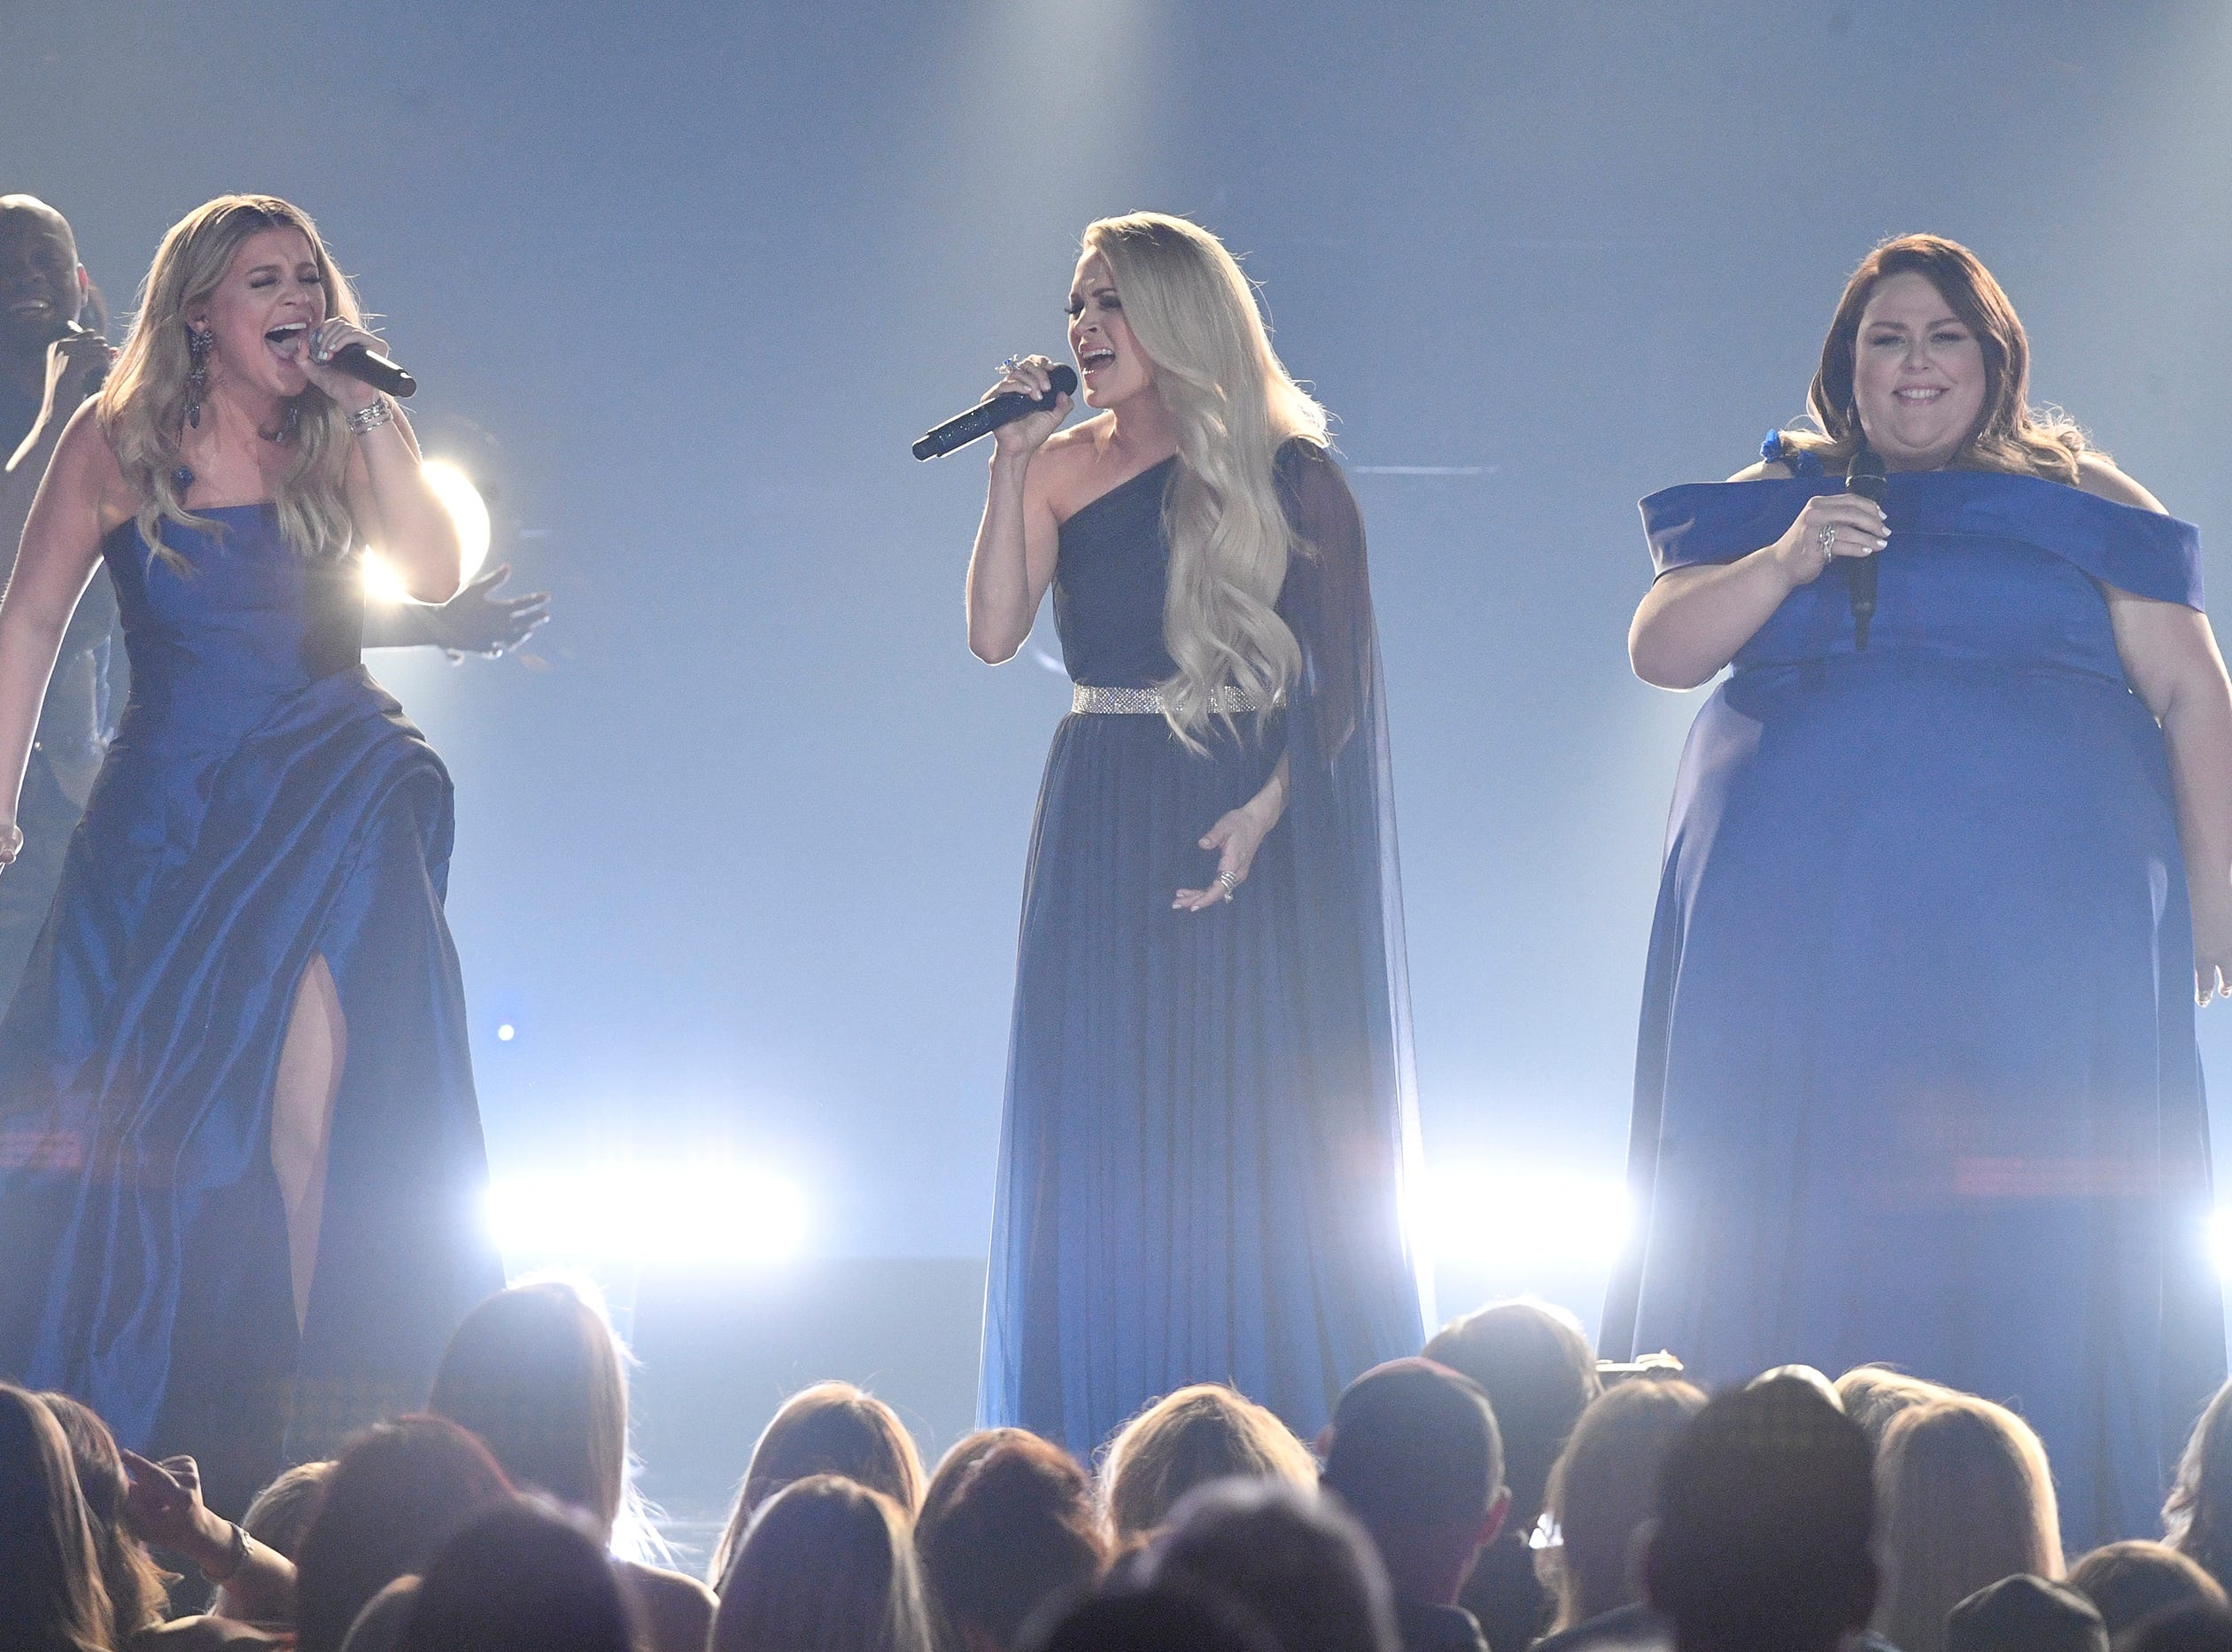 Lauren Alaina, from left, Carrie Underwood, and Chrissy Metz, performs during the 54TH Academy of Country Music Awards Sunday, April 7, 2019, in Las Vegas, Nev.